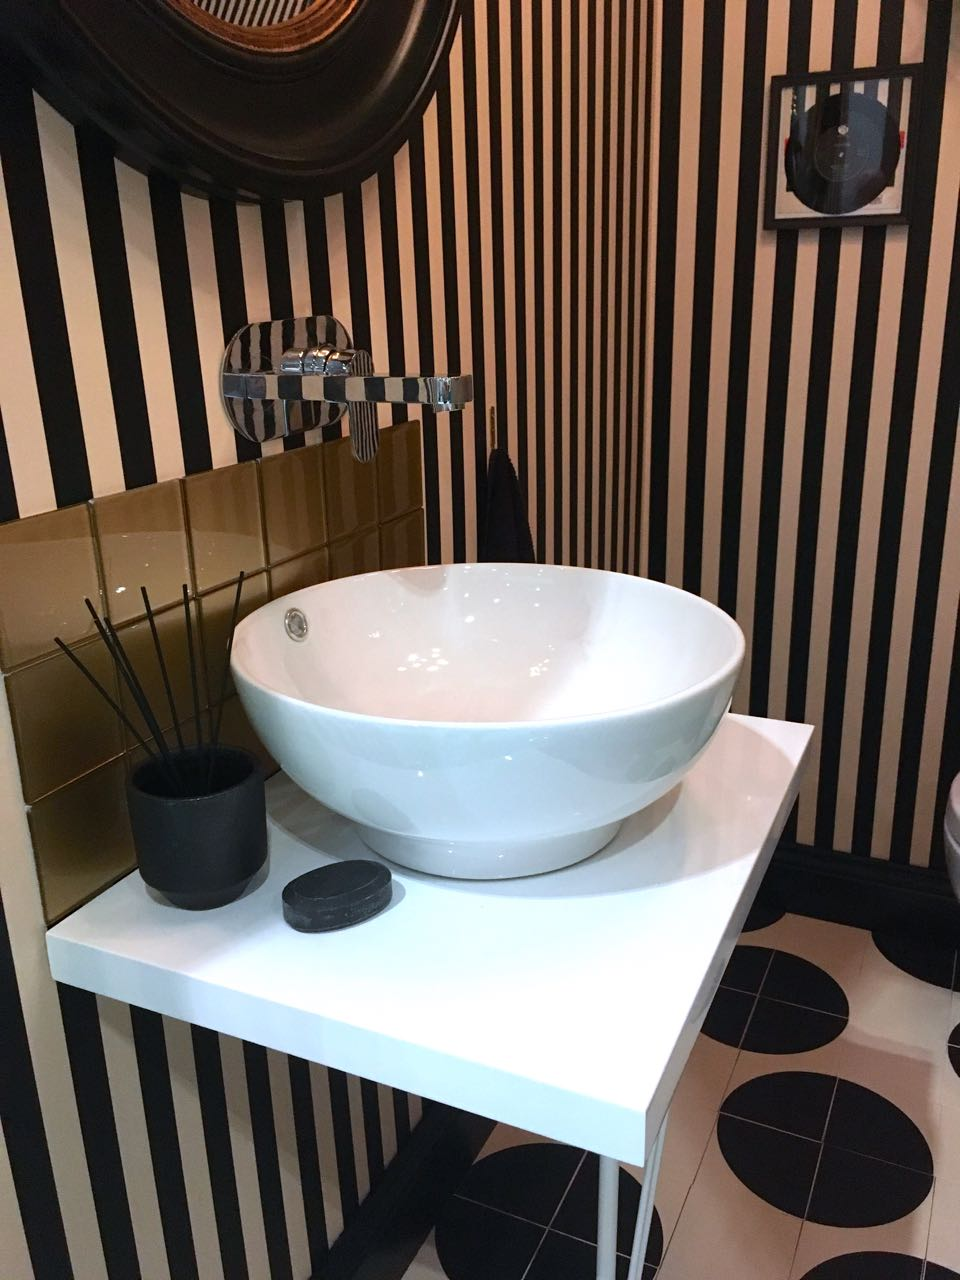 Spots stripes and a brilliant white washbasin